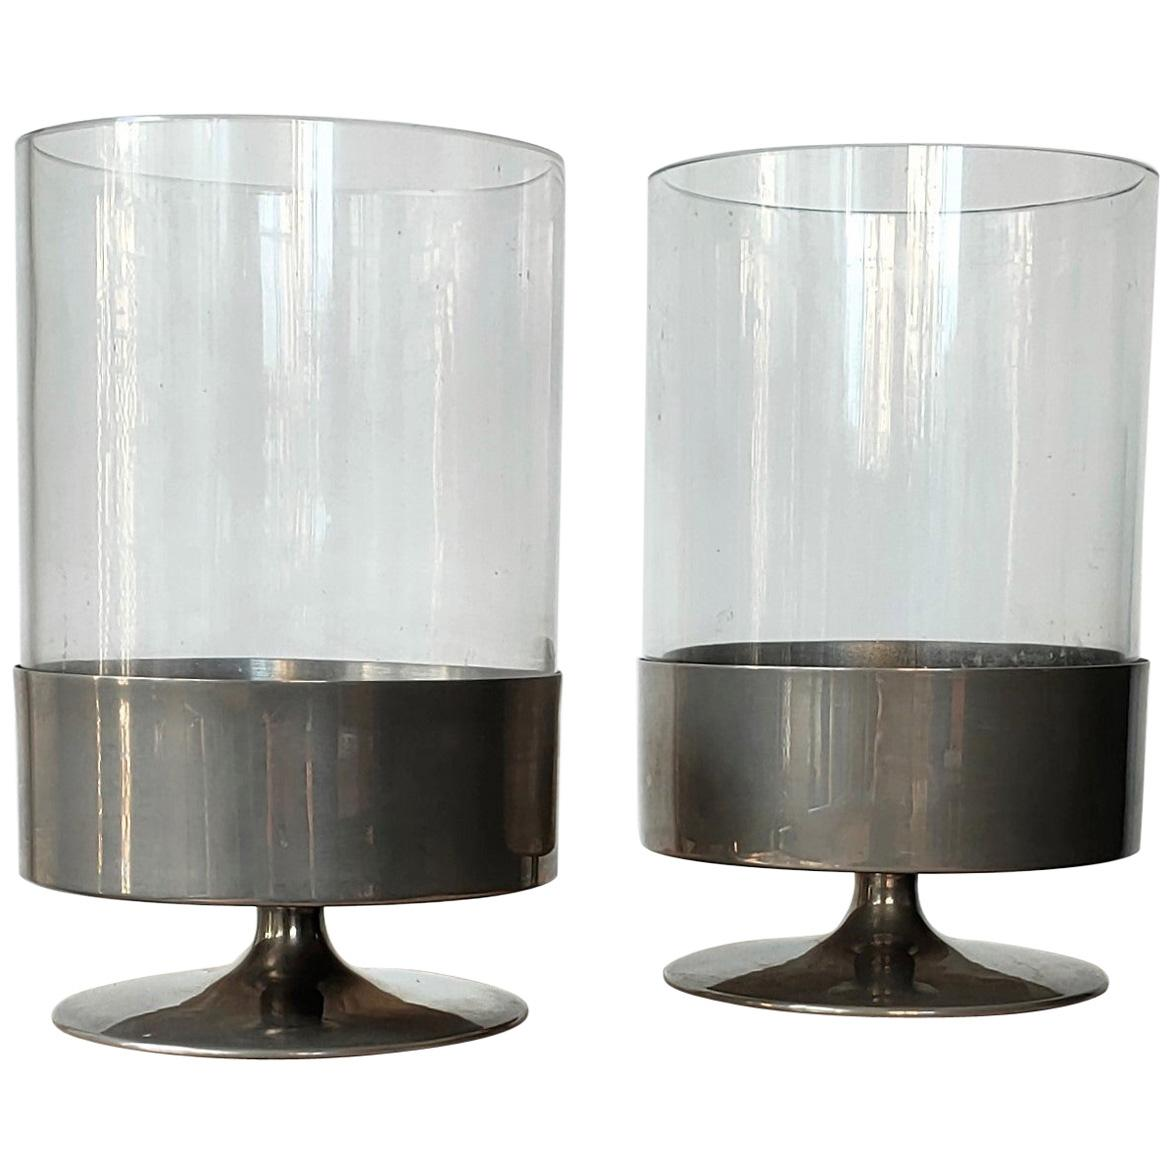 Signed Pair of Minimalist Candle Holders by Philippe Barbier, France 1970s